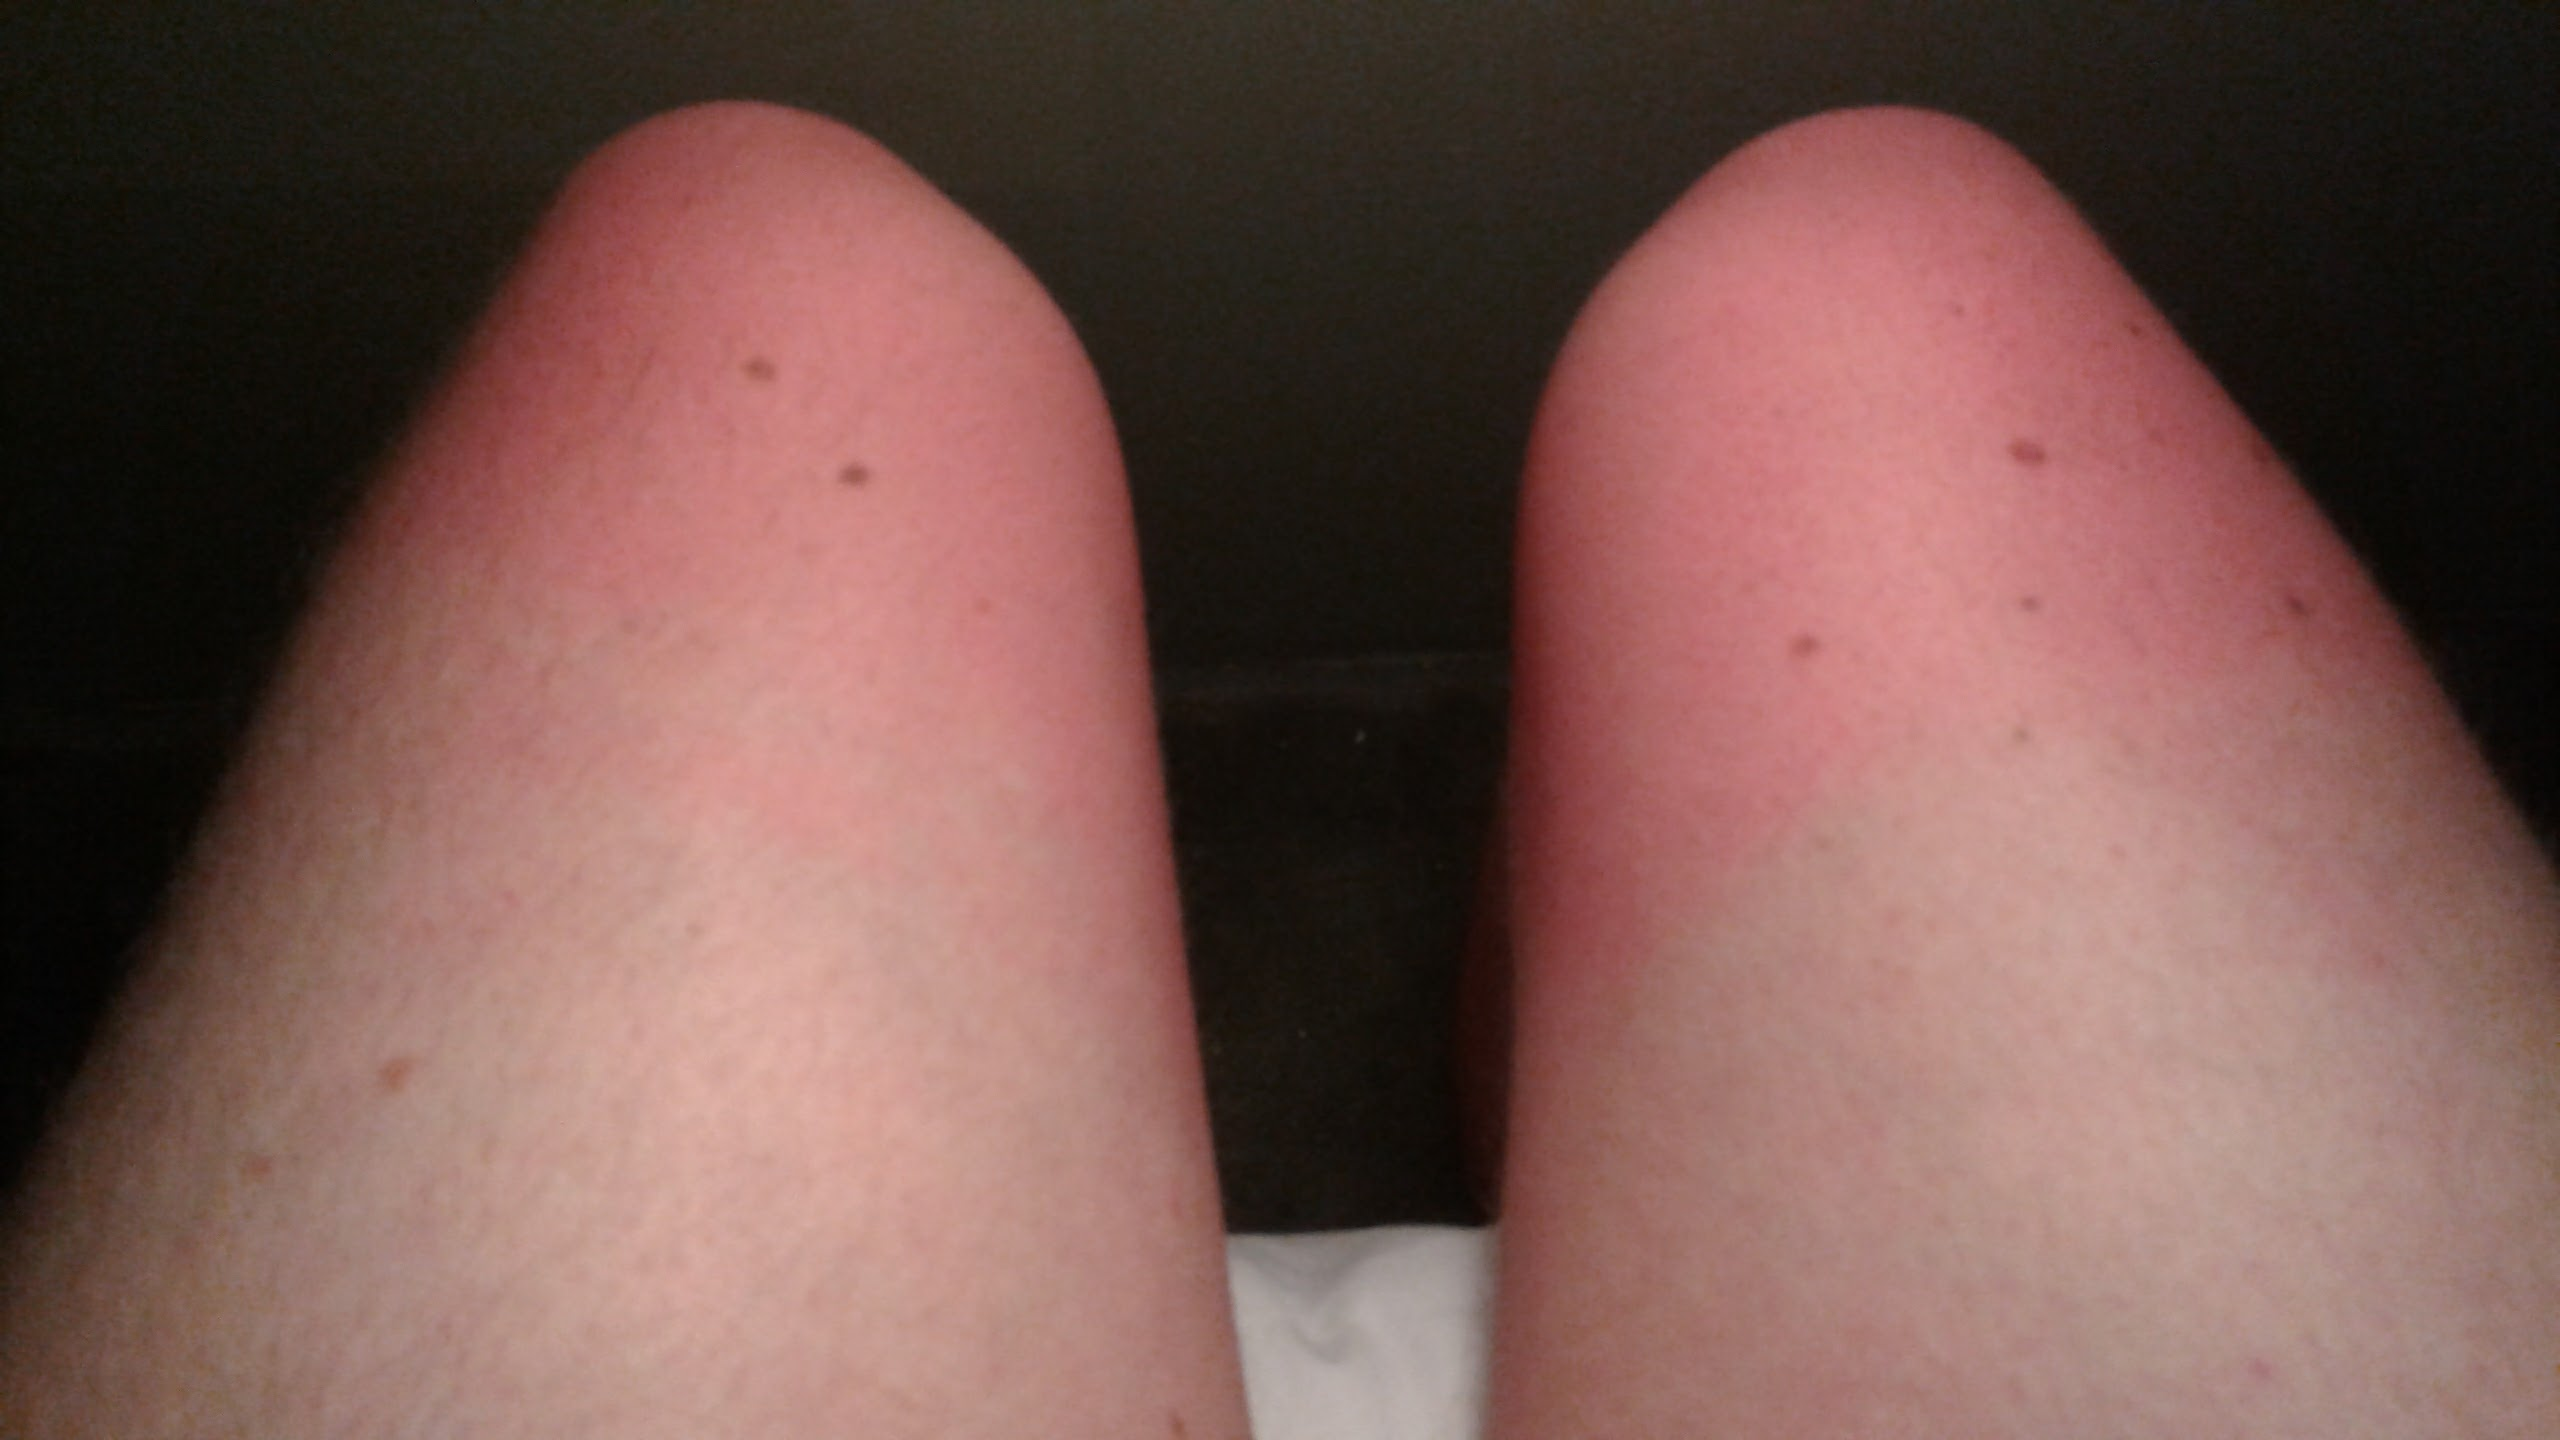 The main issue with riding in the back. And I'd put sunscreen on!